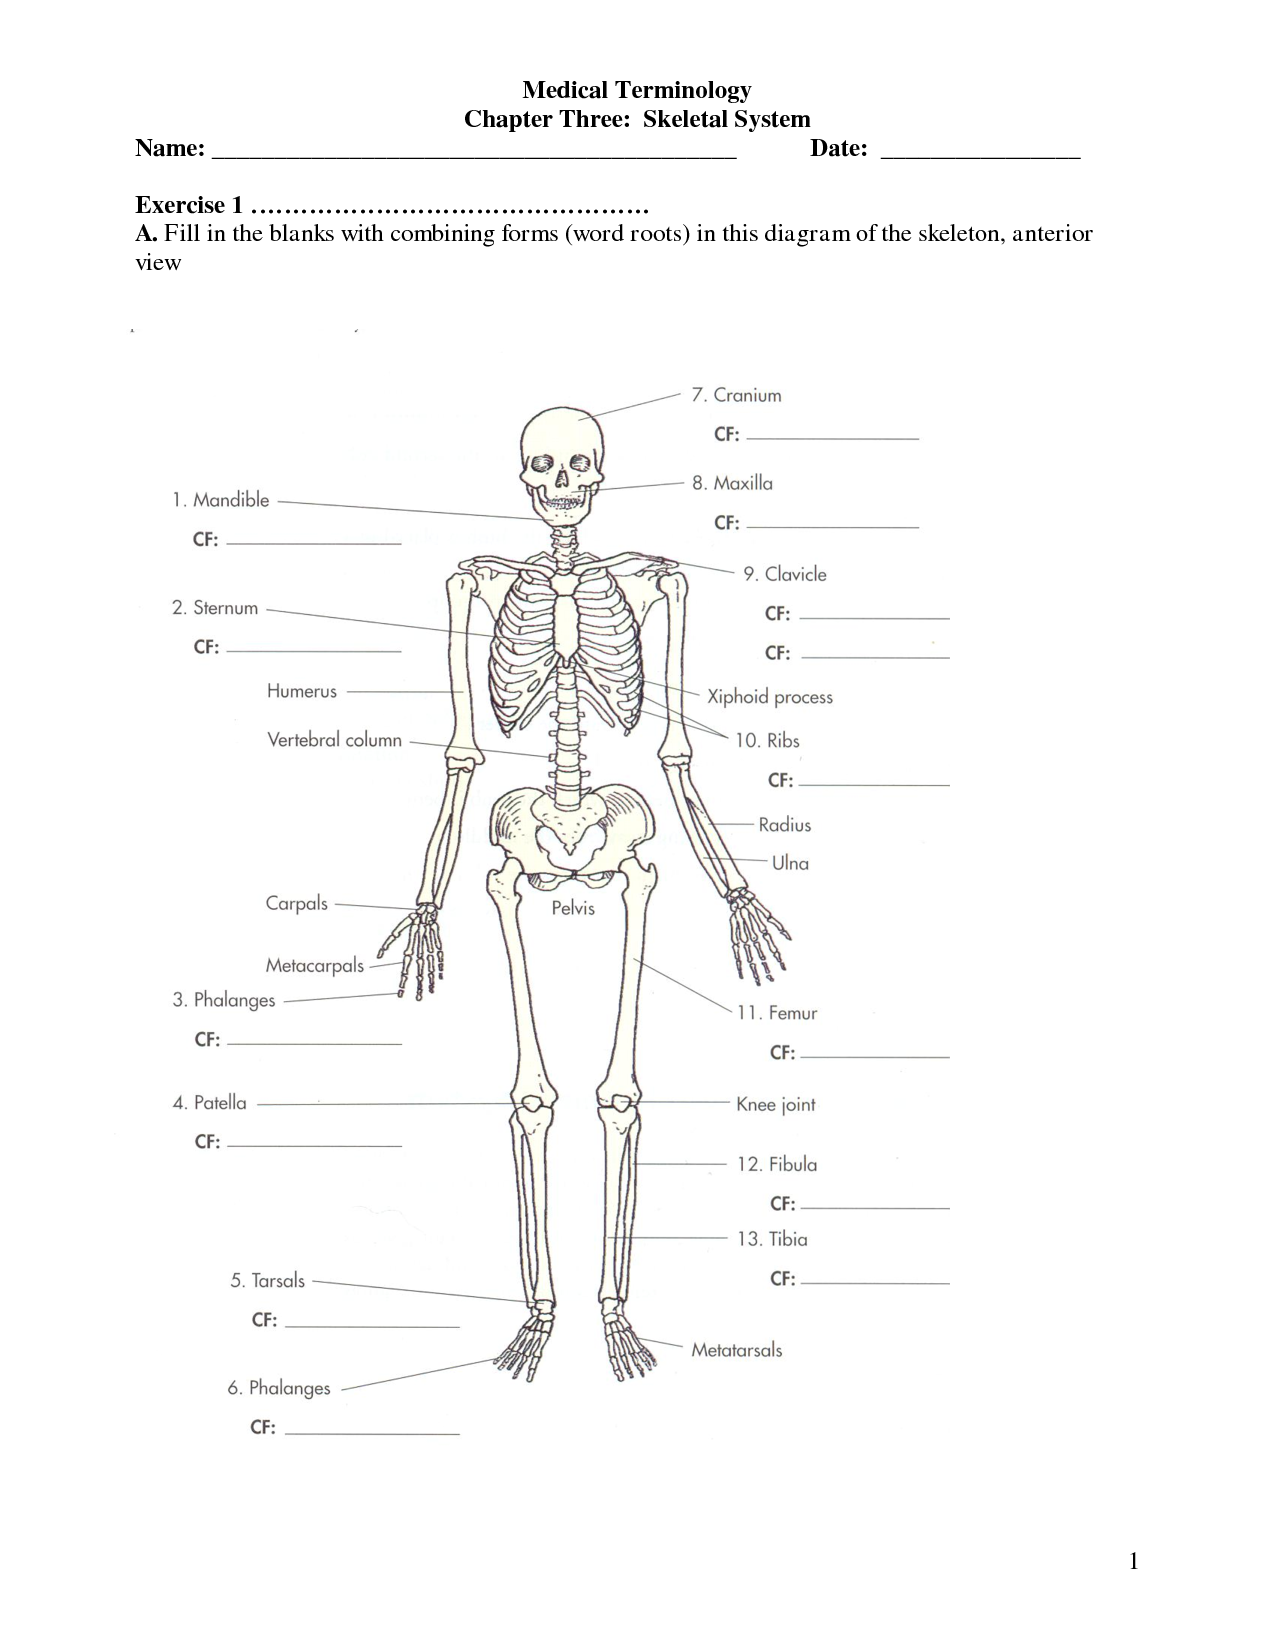 Labeled Diagram Of The Skeletal System Worksheet